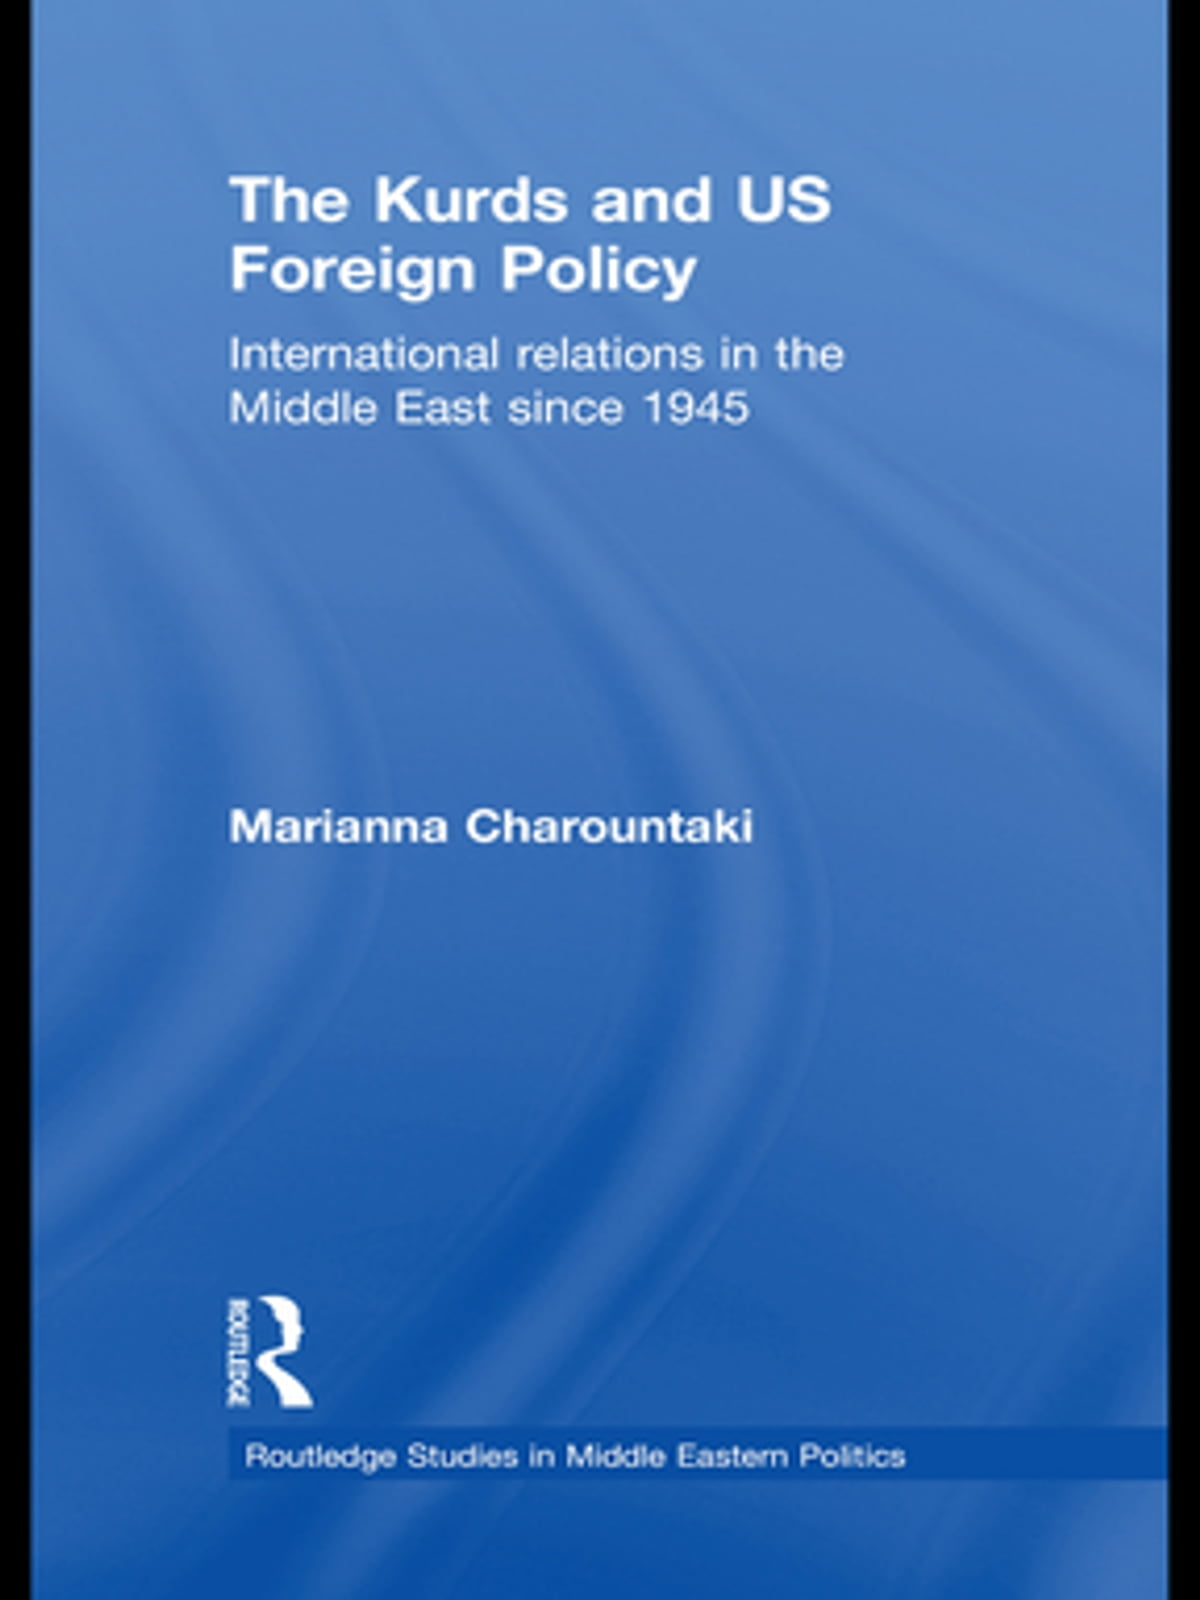 international relations of the middle east Themes of international relations that will be explored in the context of the middle east include: states, non-state actors, and external intervention politics of identity and transnational ideologies regionalism and regionalisation alliance formation, regional powers and hegemony security, armed conflict and conflict resolution.